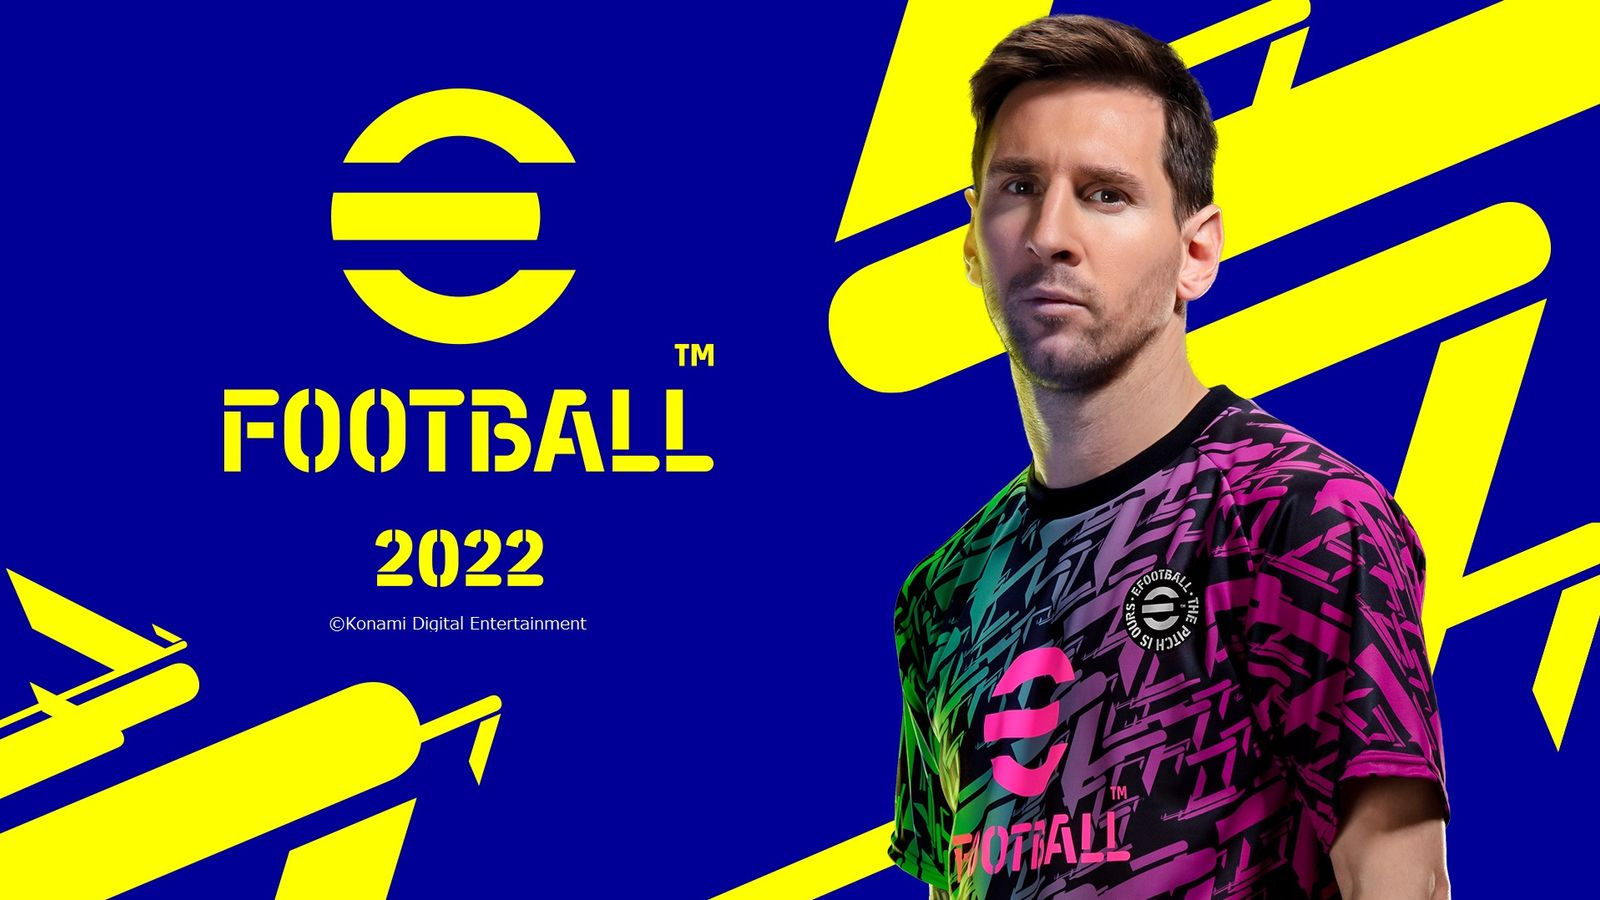 Could eFootball be the game to knock FIFA off its perch?